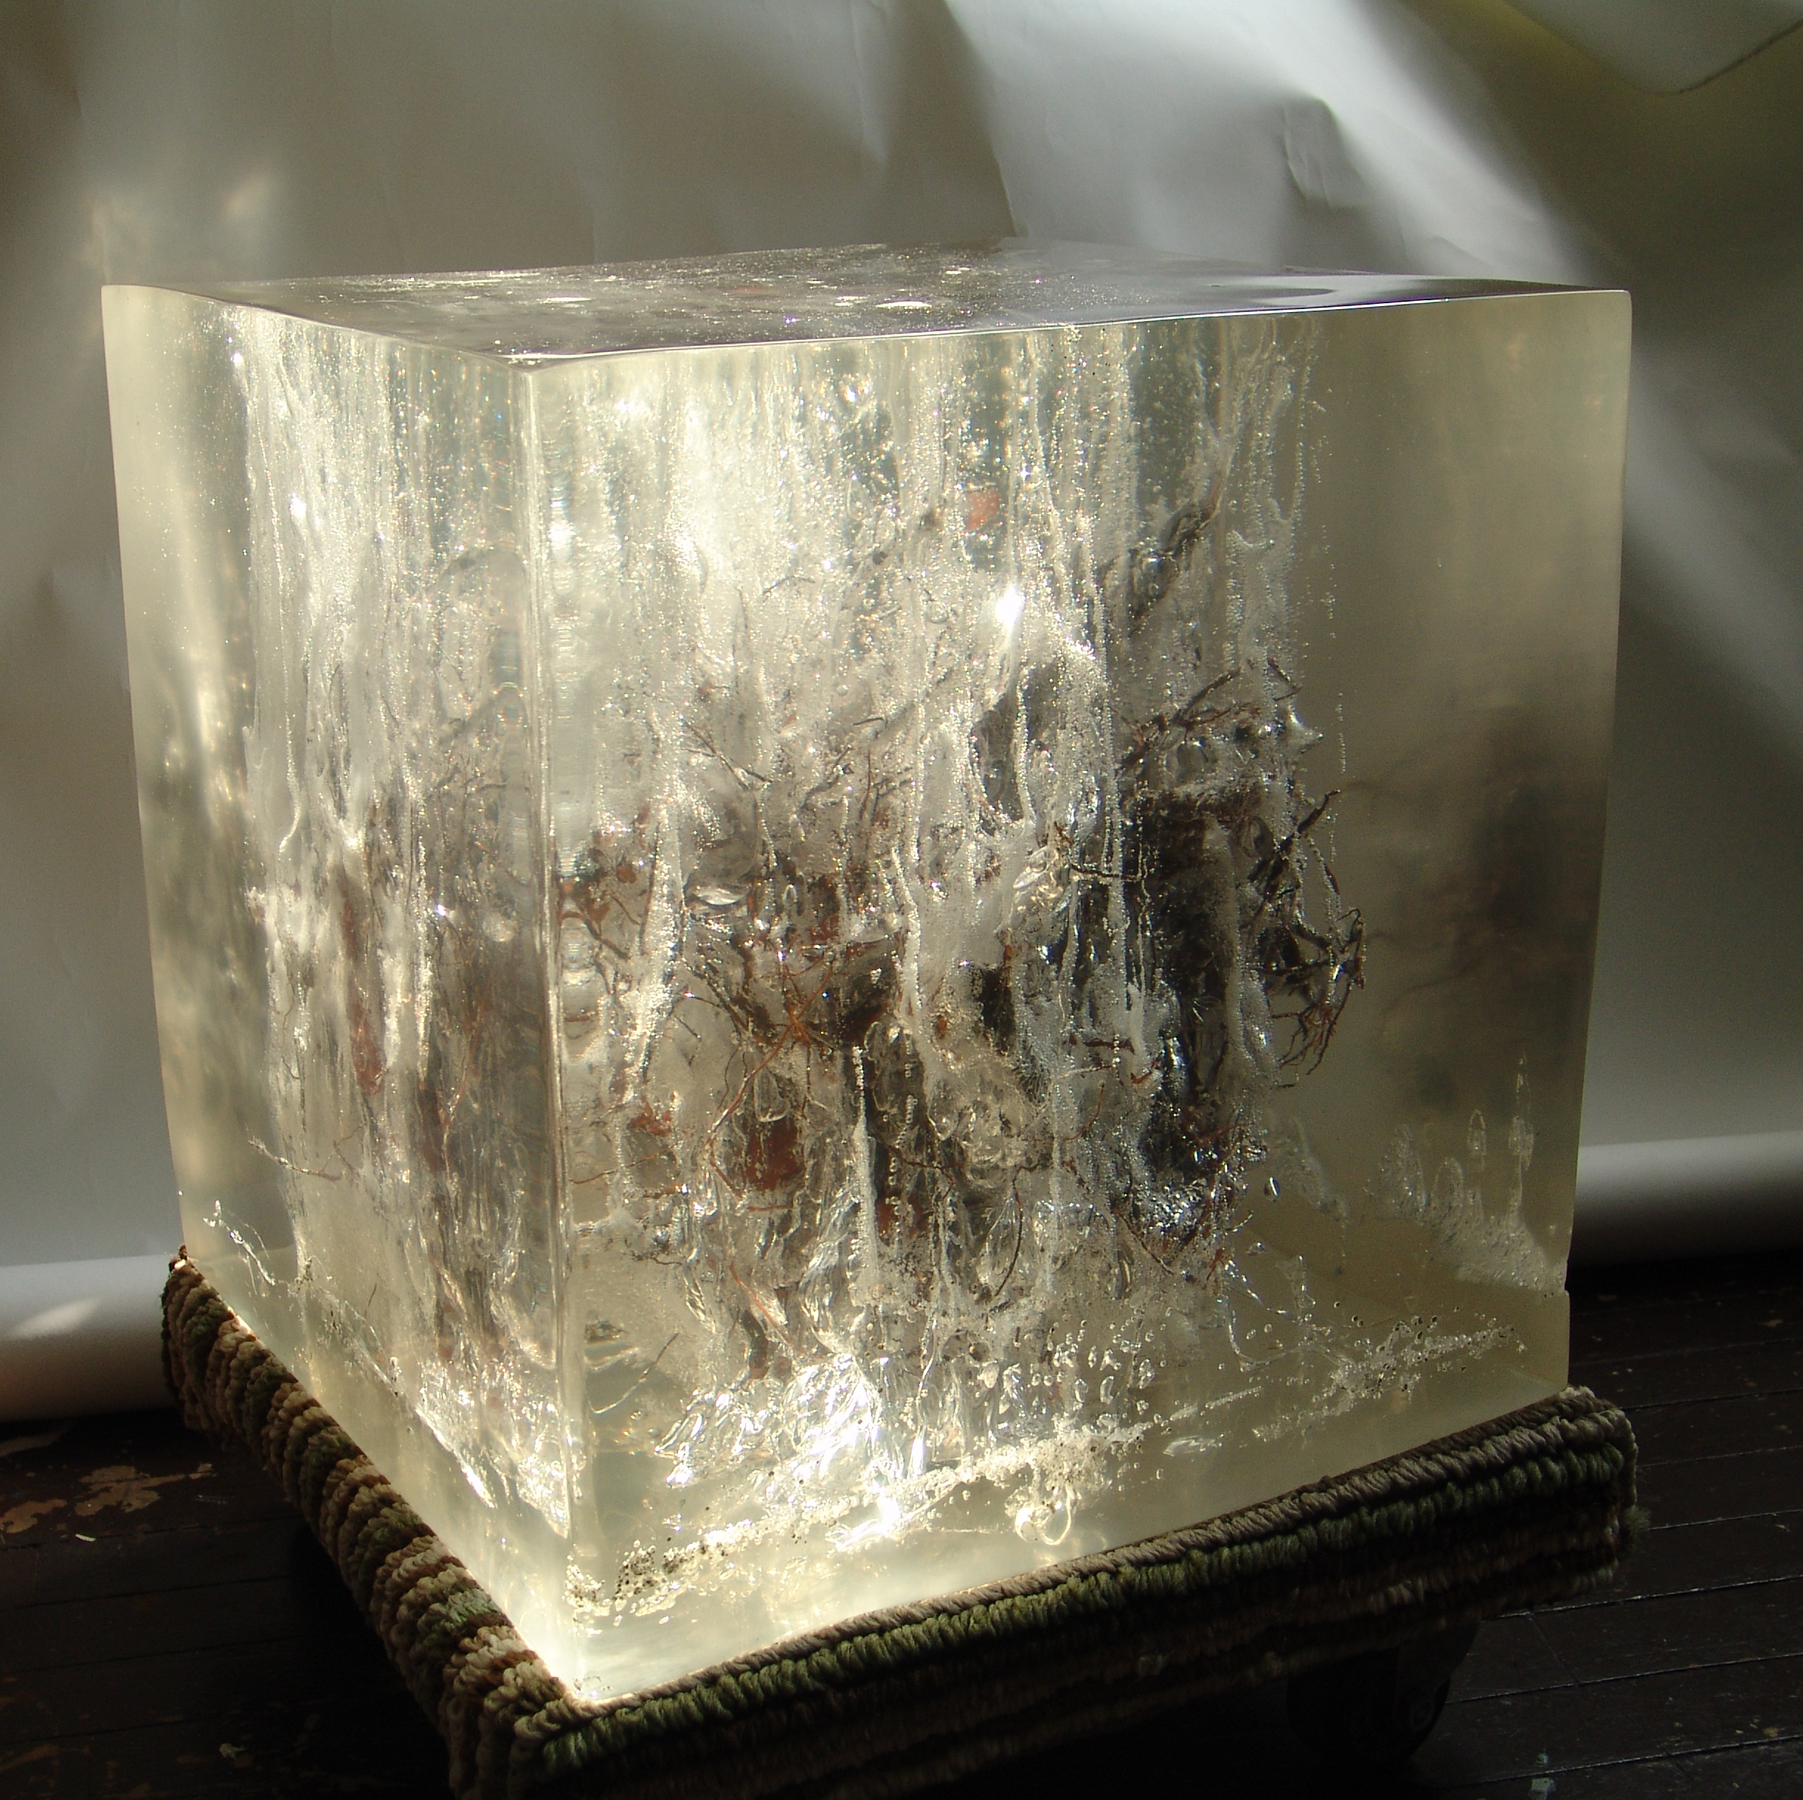 City Root #5   Another experimental cube, exploring bubbles in its chemical reactions, using an actual tree root.